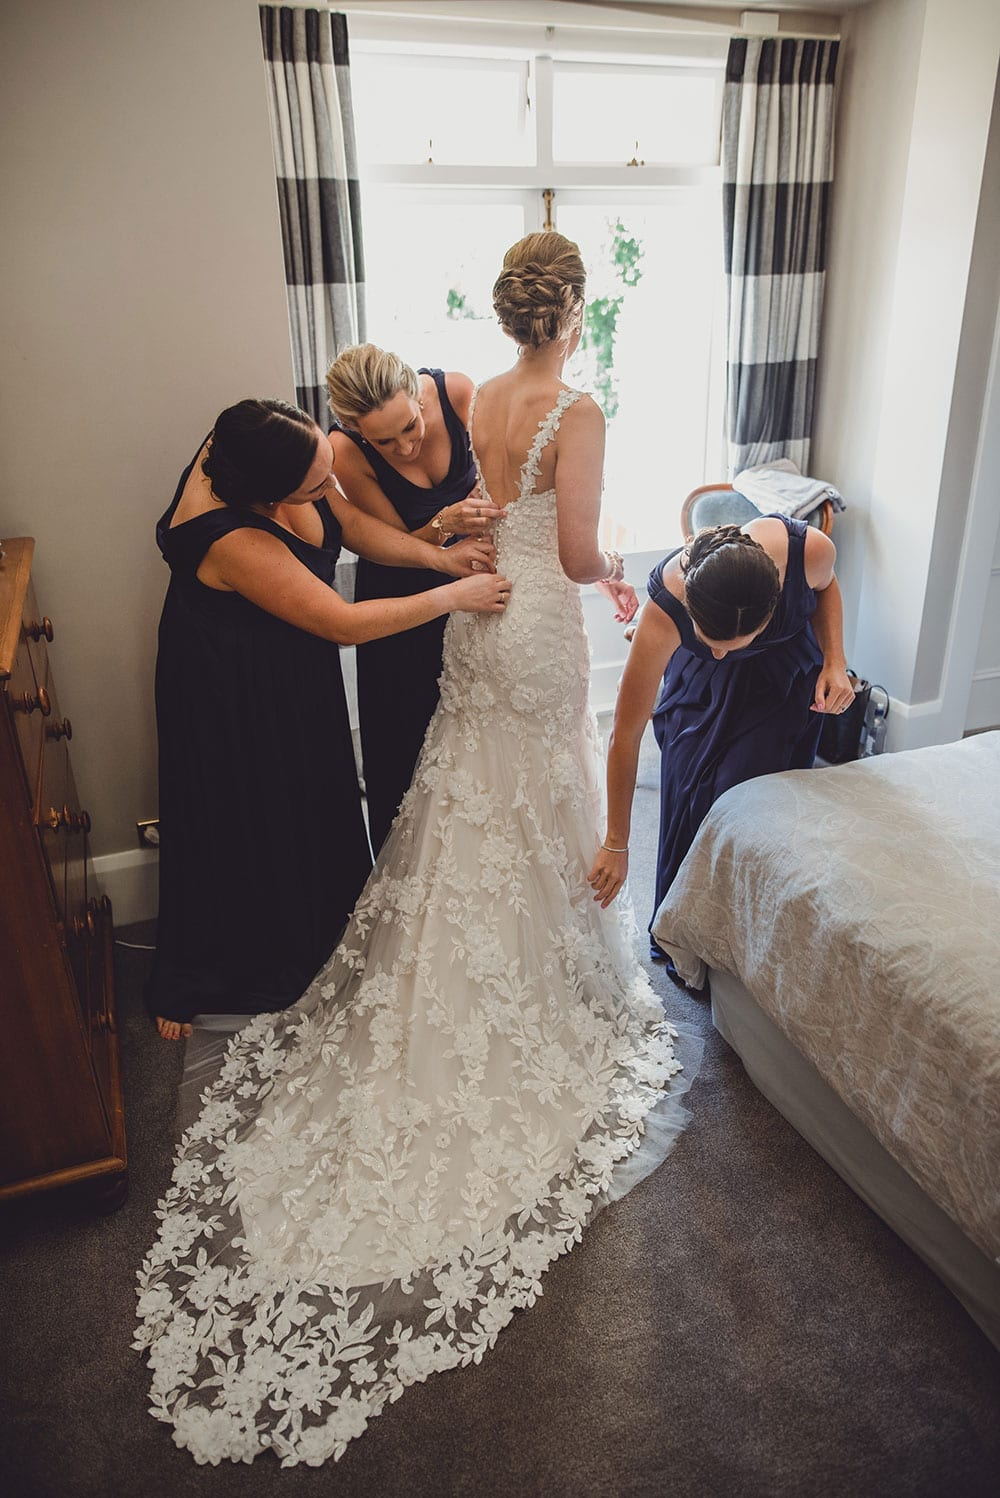 Real Weddings | Vinka Design | Real Brides Wearing Vinka Gowns | Claire and Paul - Claire being dressed with train flowing and lace detail showing